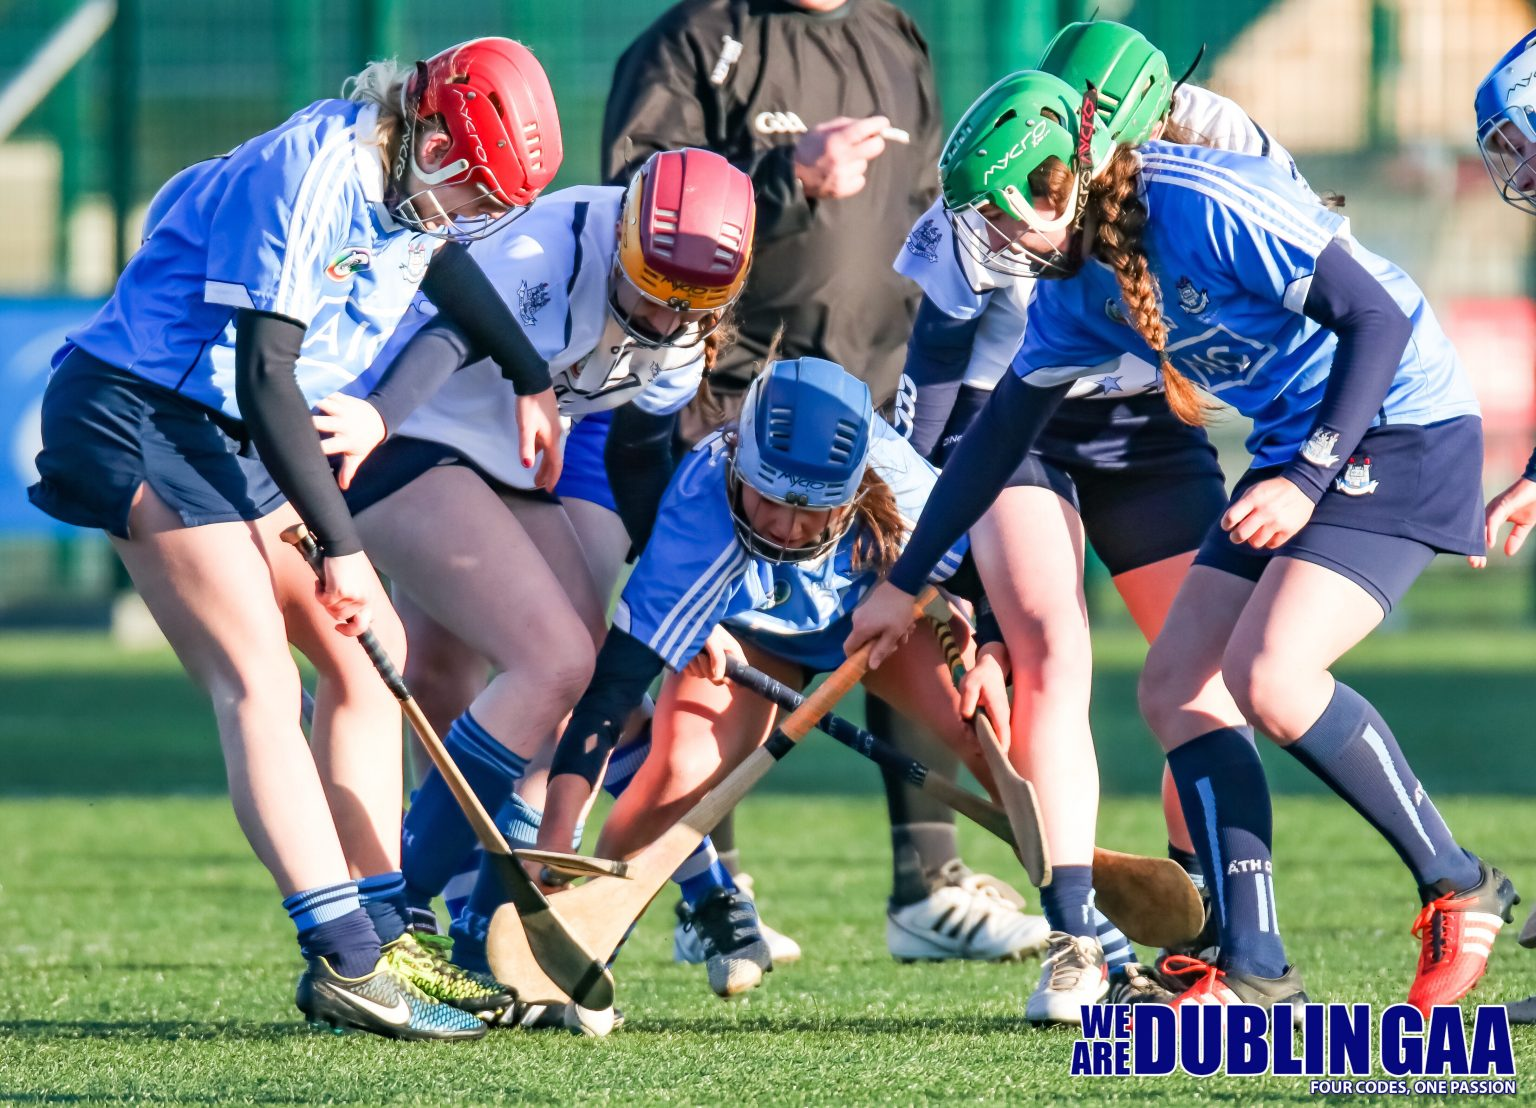 DUBLIN CAMOGIE SENIORS IMPRESS IN ANNUAL DUBS STARS GAME